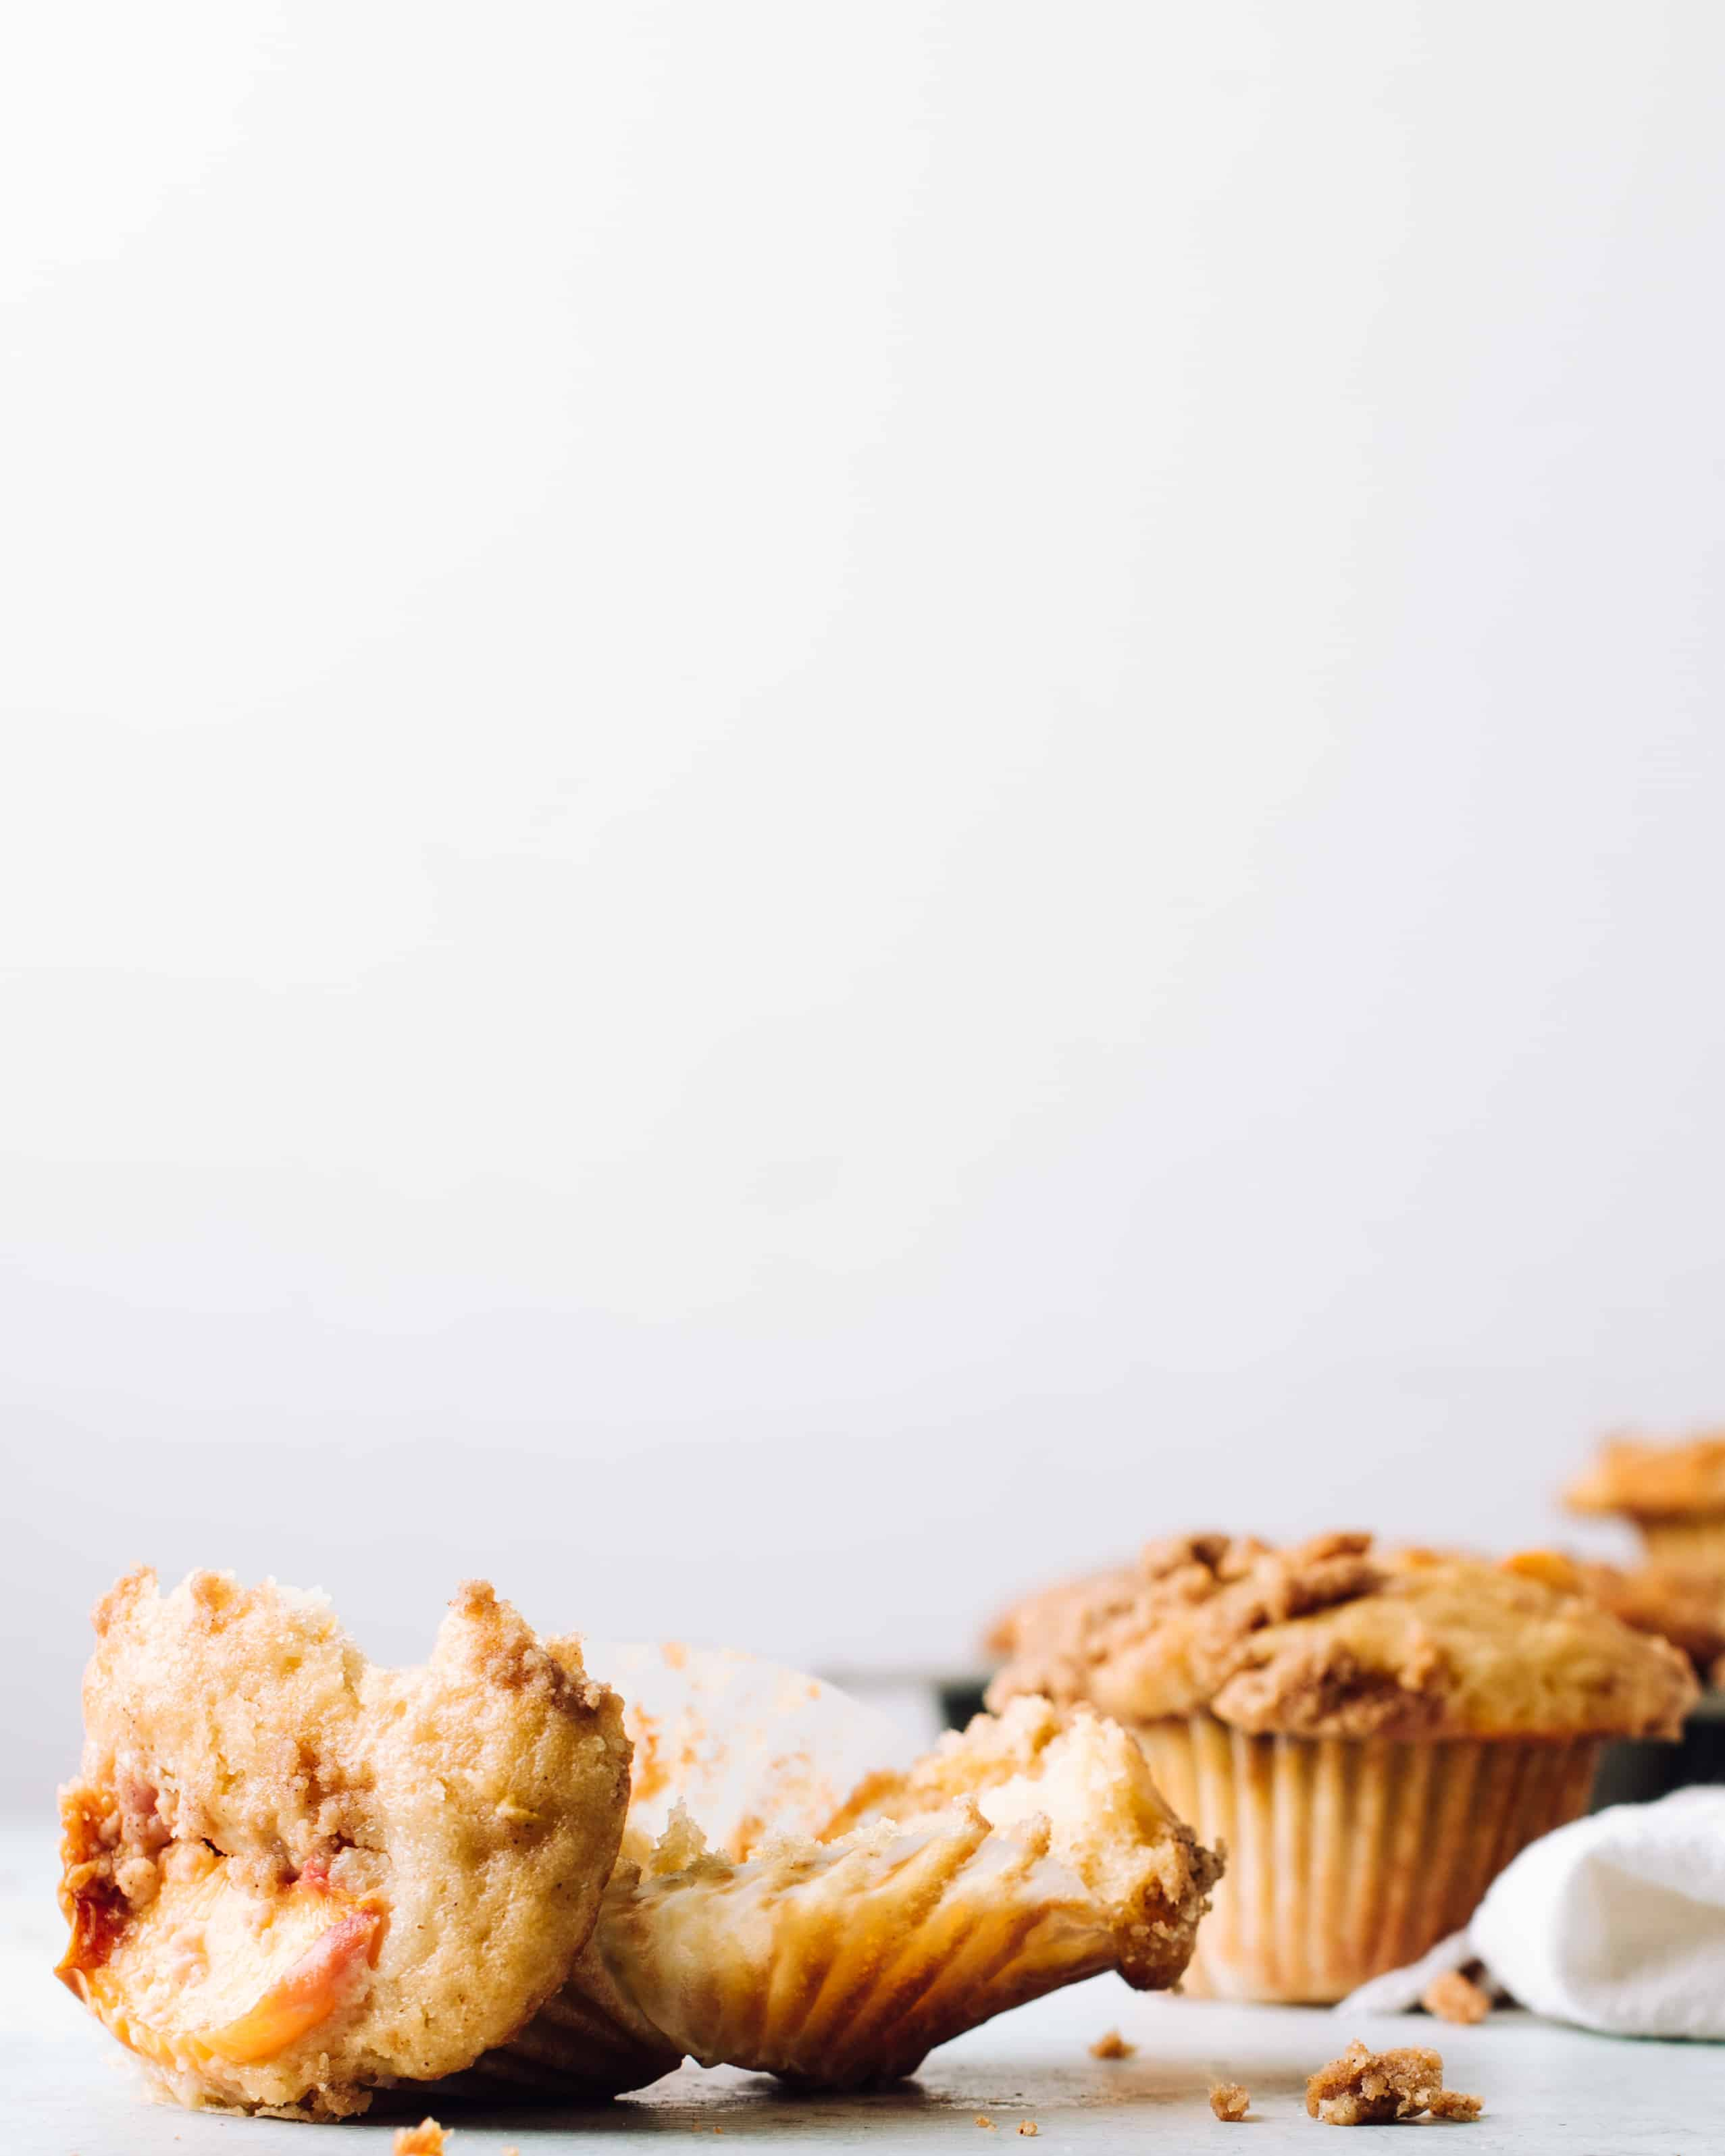 Peach Muffins with Streusel | Foodess Recipes